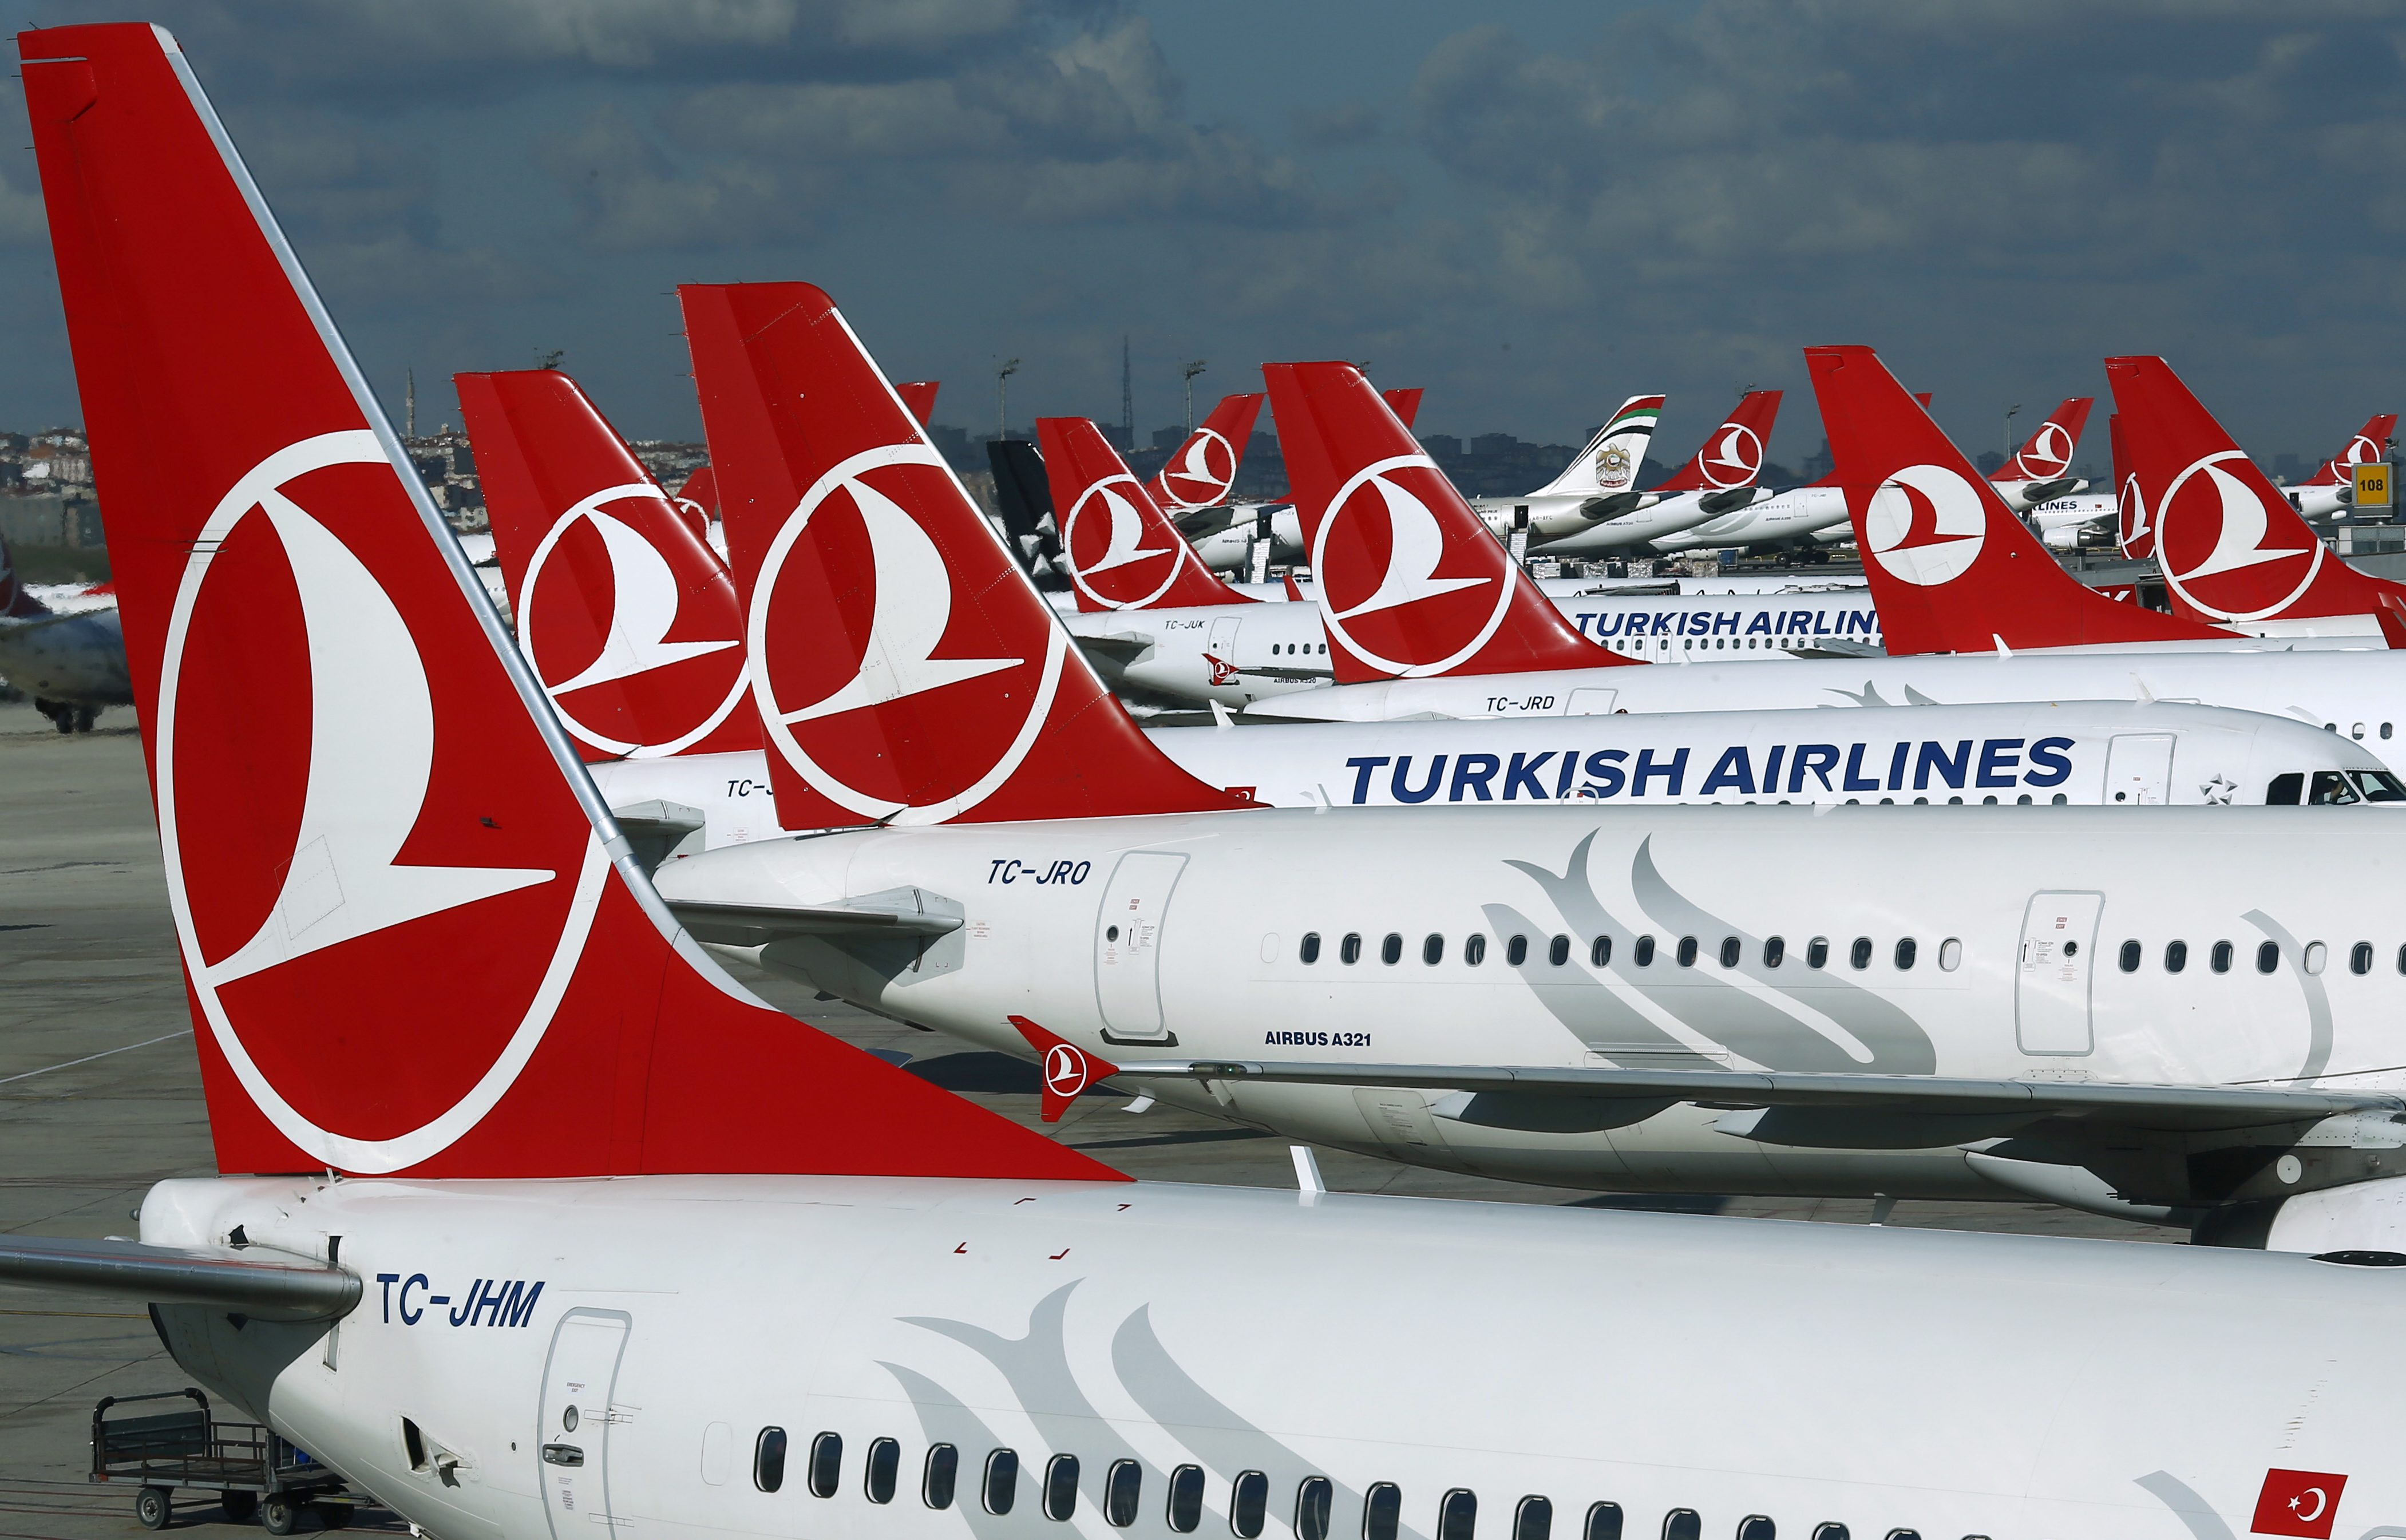 Turkish Airlines aircrafts are parked at the Ataturk International airport in Istanbul